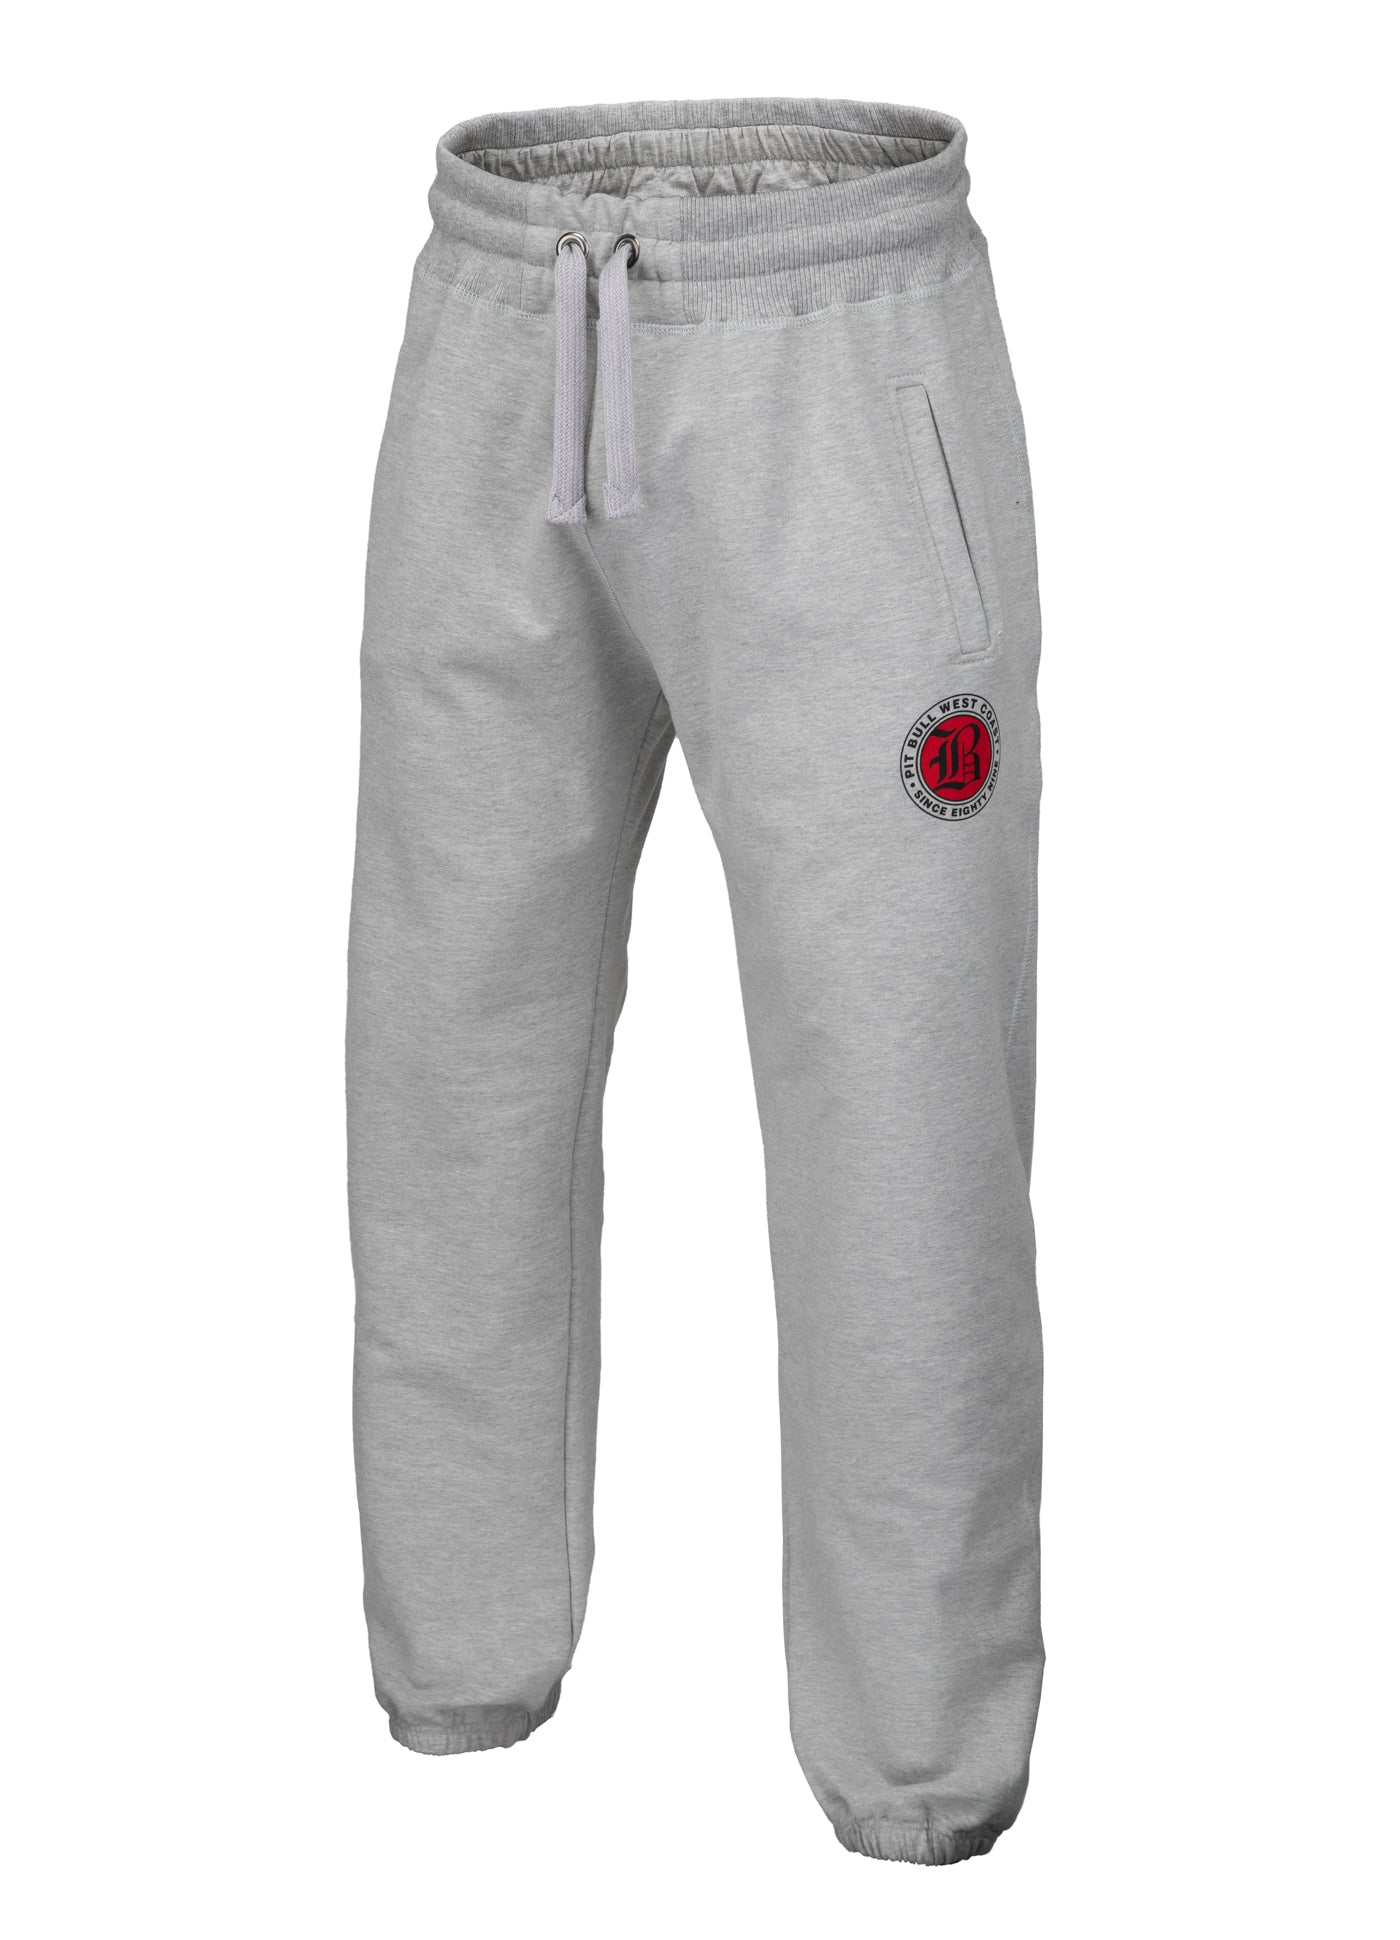 Berserkers Jogging Trousers Grey - pitbullwestcoast